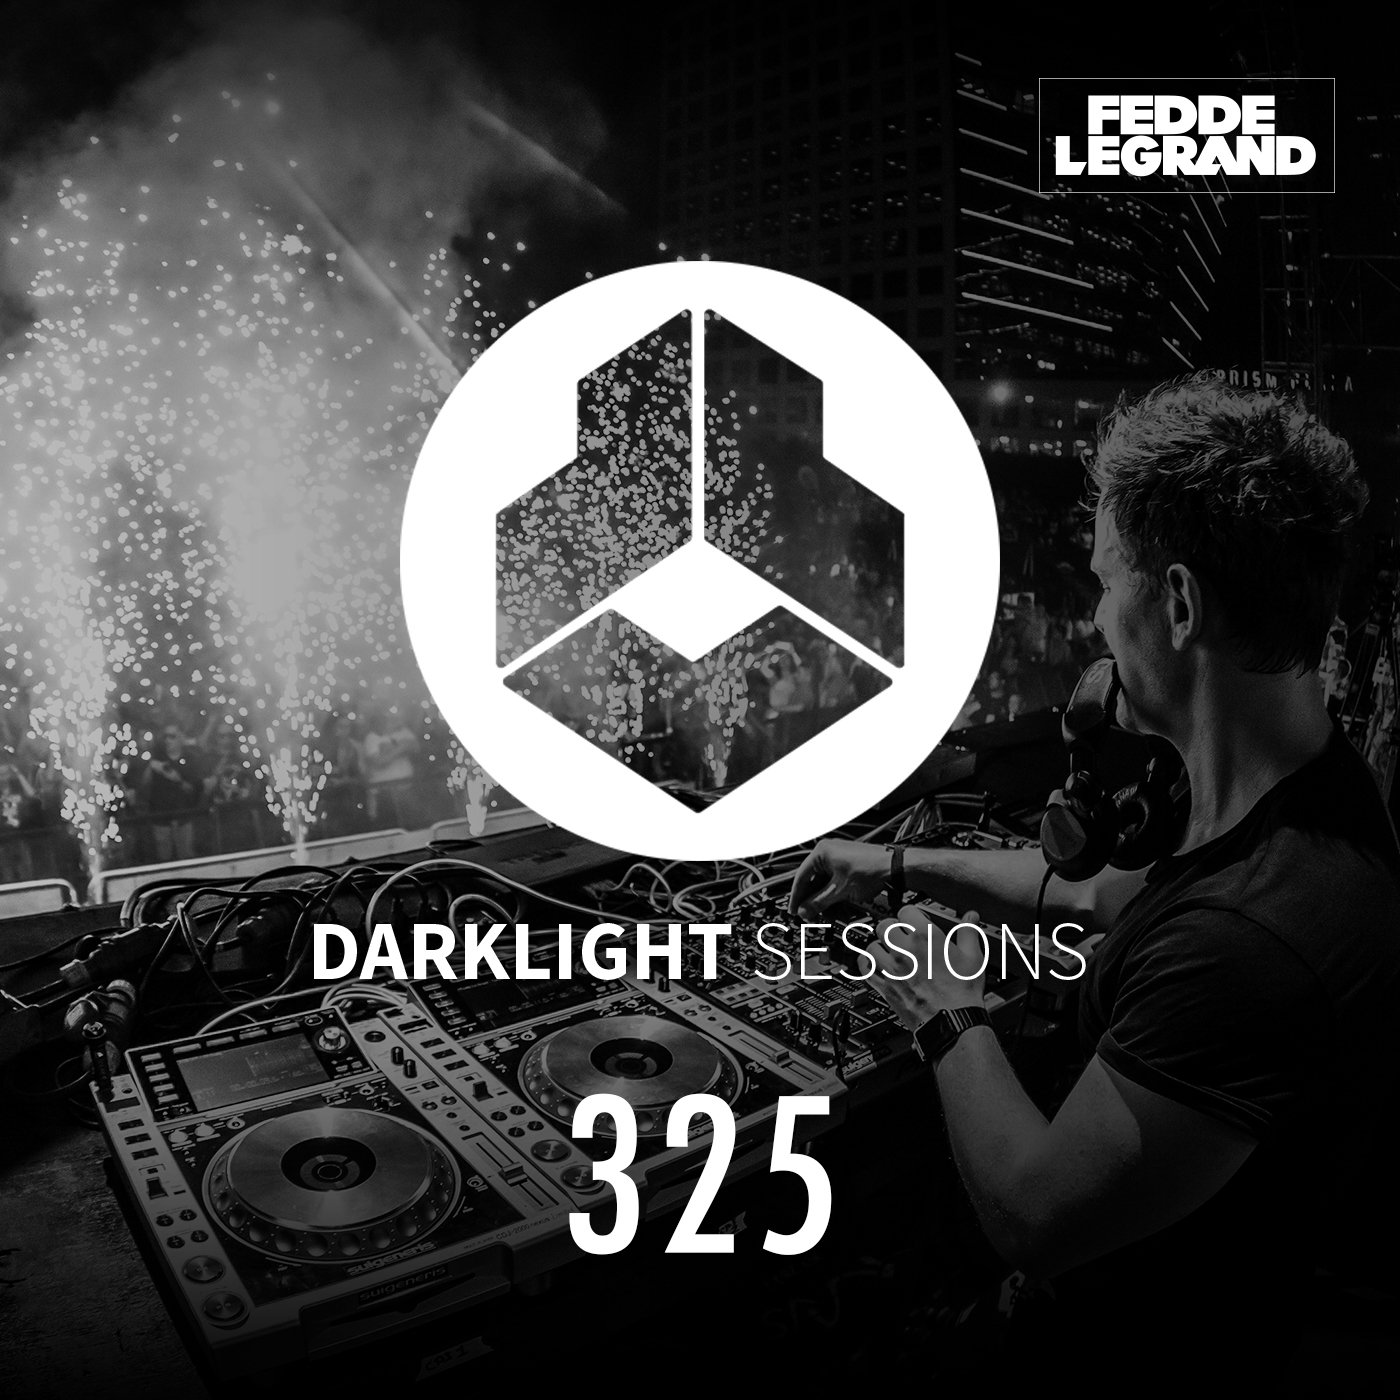 Darklight Sessions 325